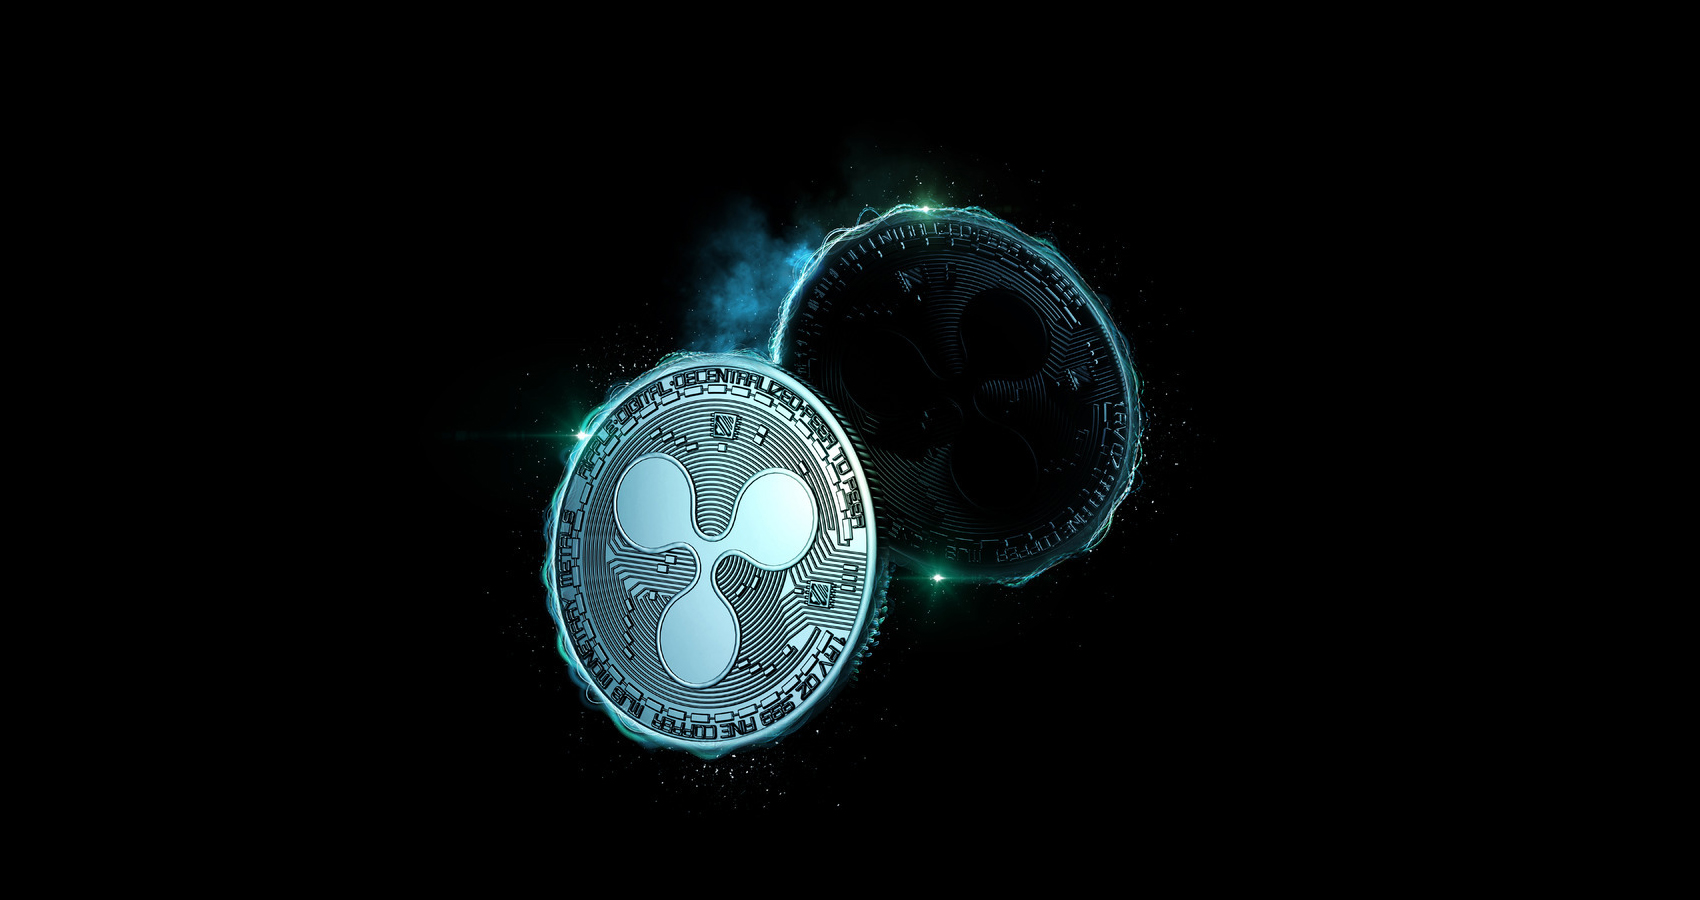 Ripple tries to reject $ 1